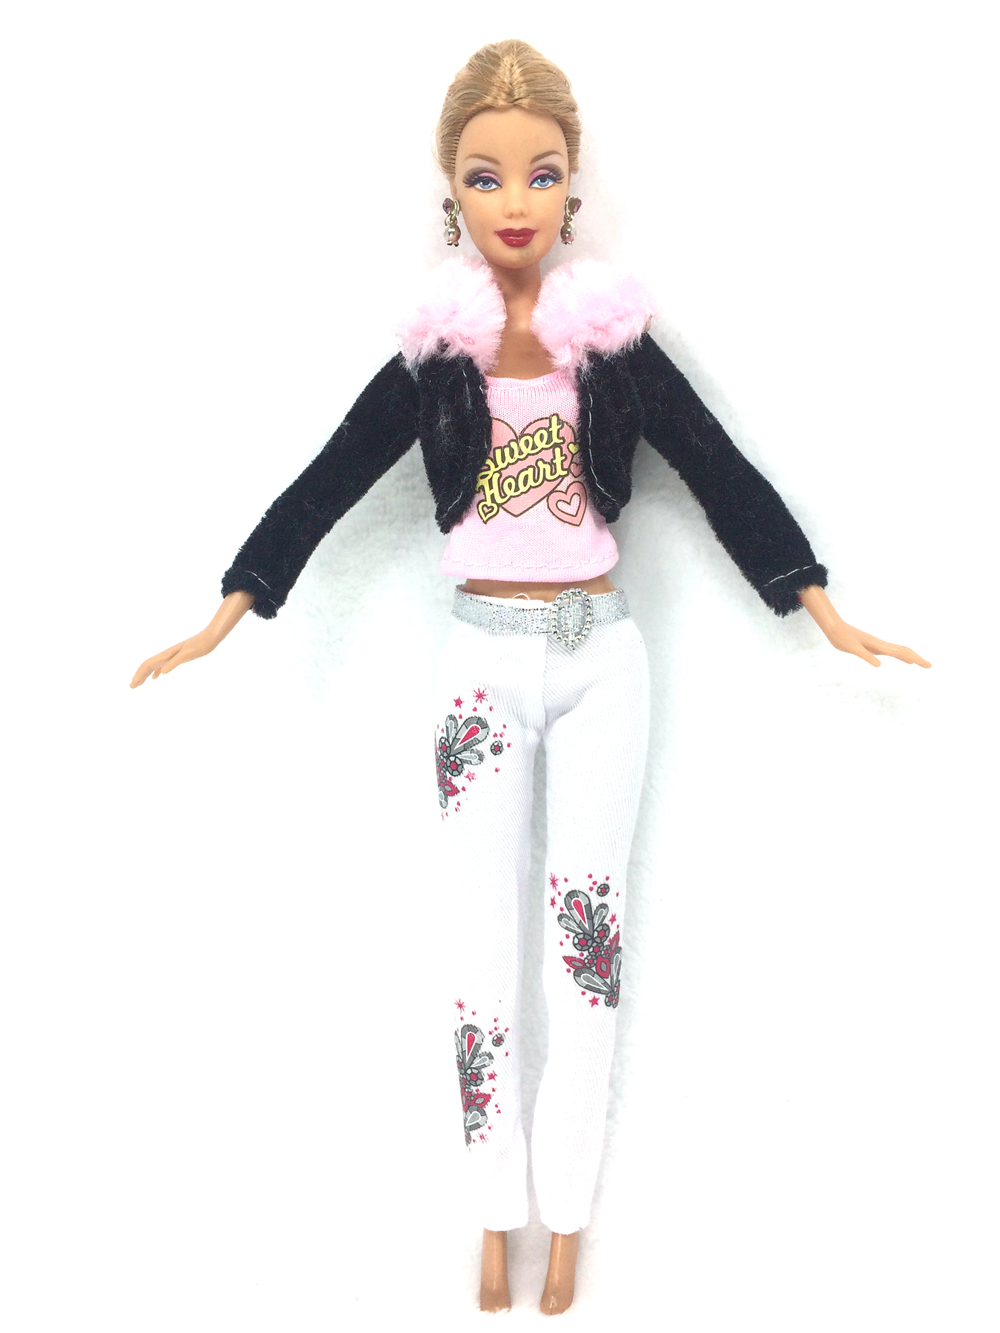 NK 2016 Latest Doll outift  Stunning Handmade Occasion Garments Prime Vogue Design For Barbie Noble Doll Greatest Youngster Ladies'Reward 014B